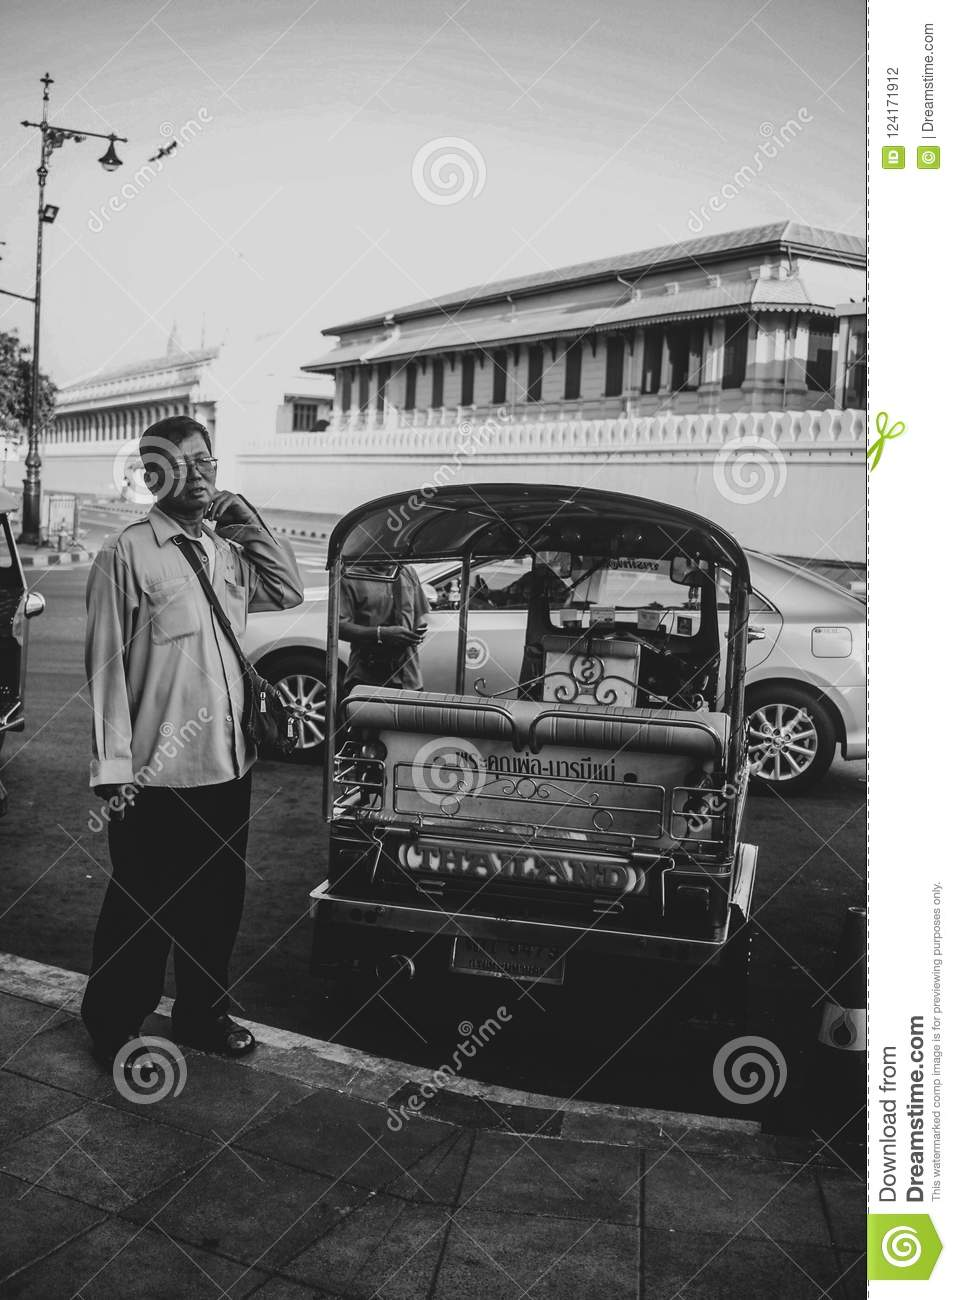 Tuc-tuc editorial photography  Image of taxi, business